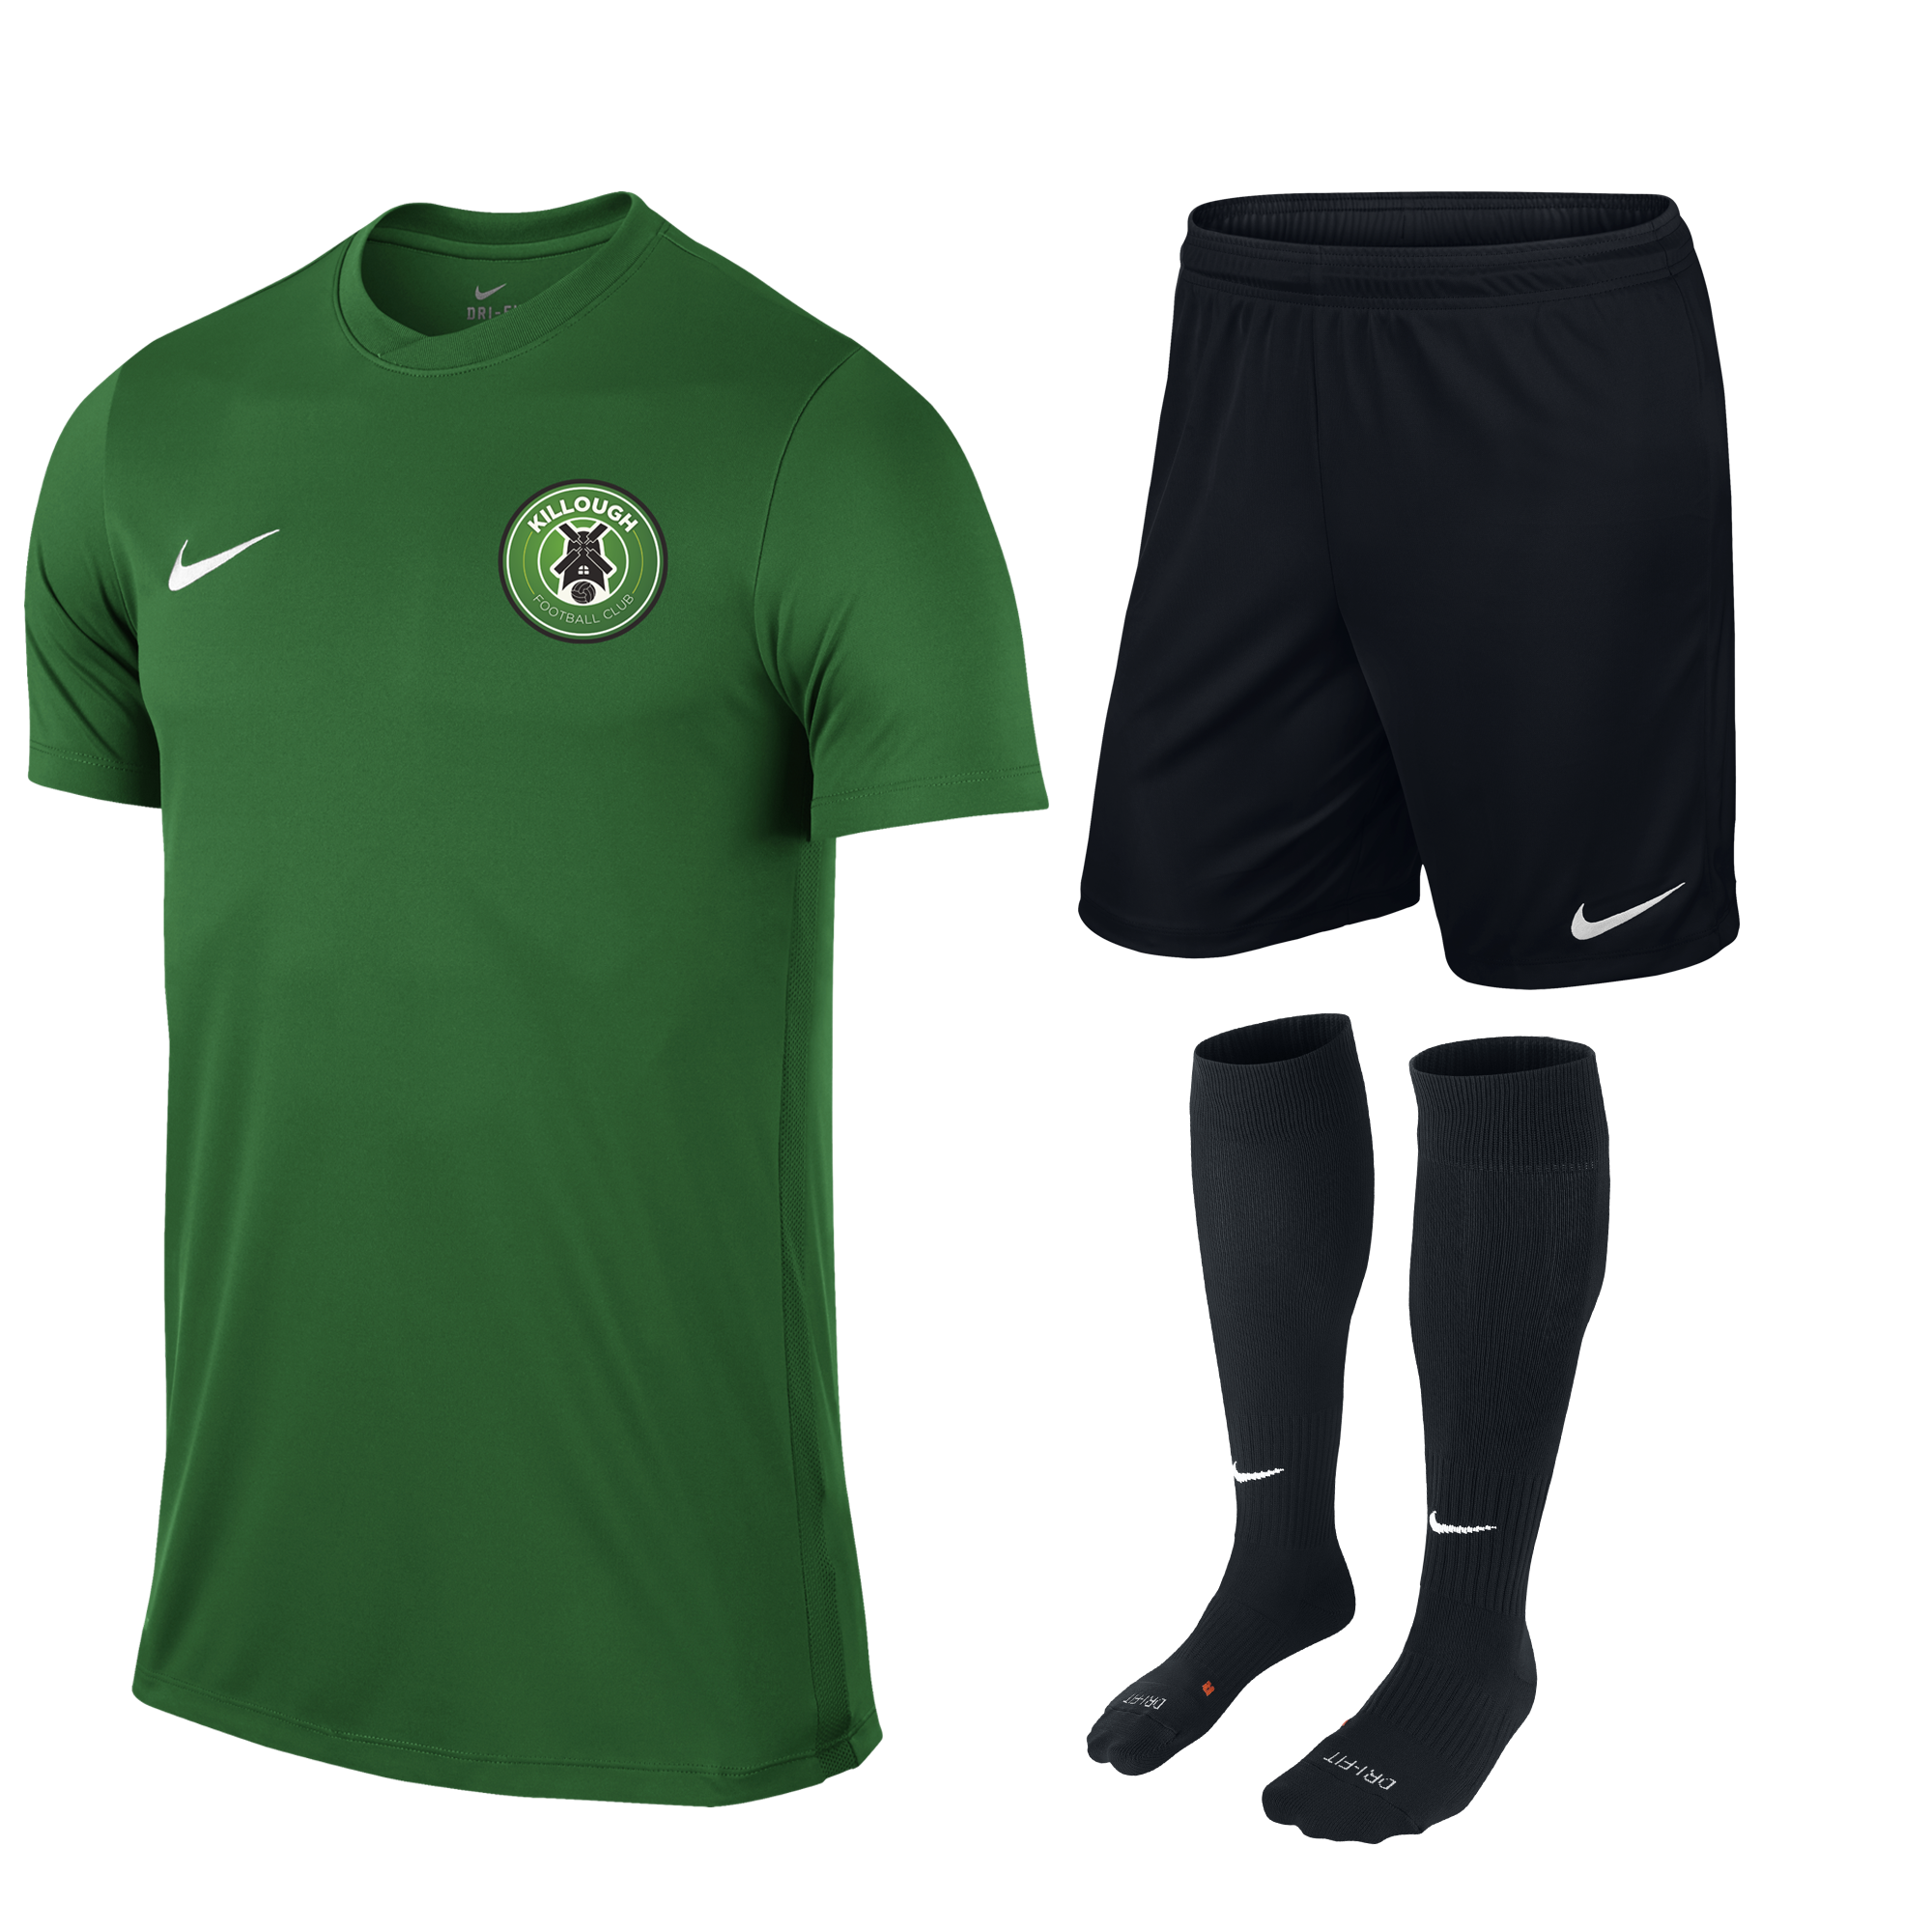 killough fc training kit 36579 p